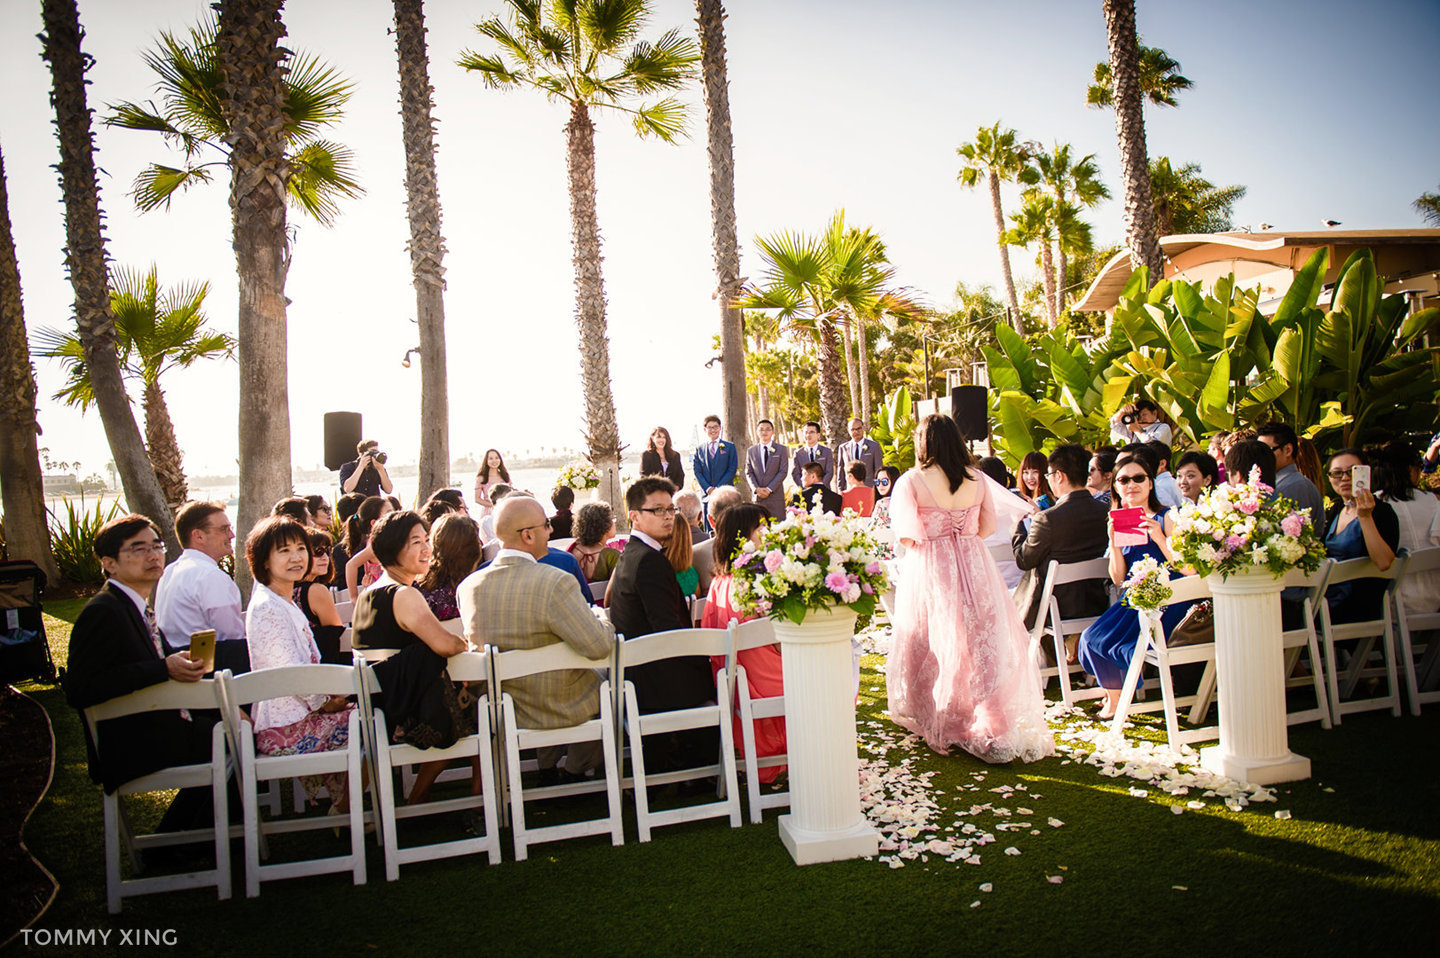 Paradise Point Resort Wedding Xiaolu & Bin San Diego 圣地亚哥婚礼摄影跟拍 Tommy Xing Photography 洛杉矶婚礼婚纱照摄影师 094.jpg